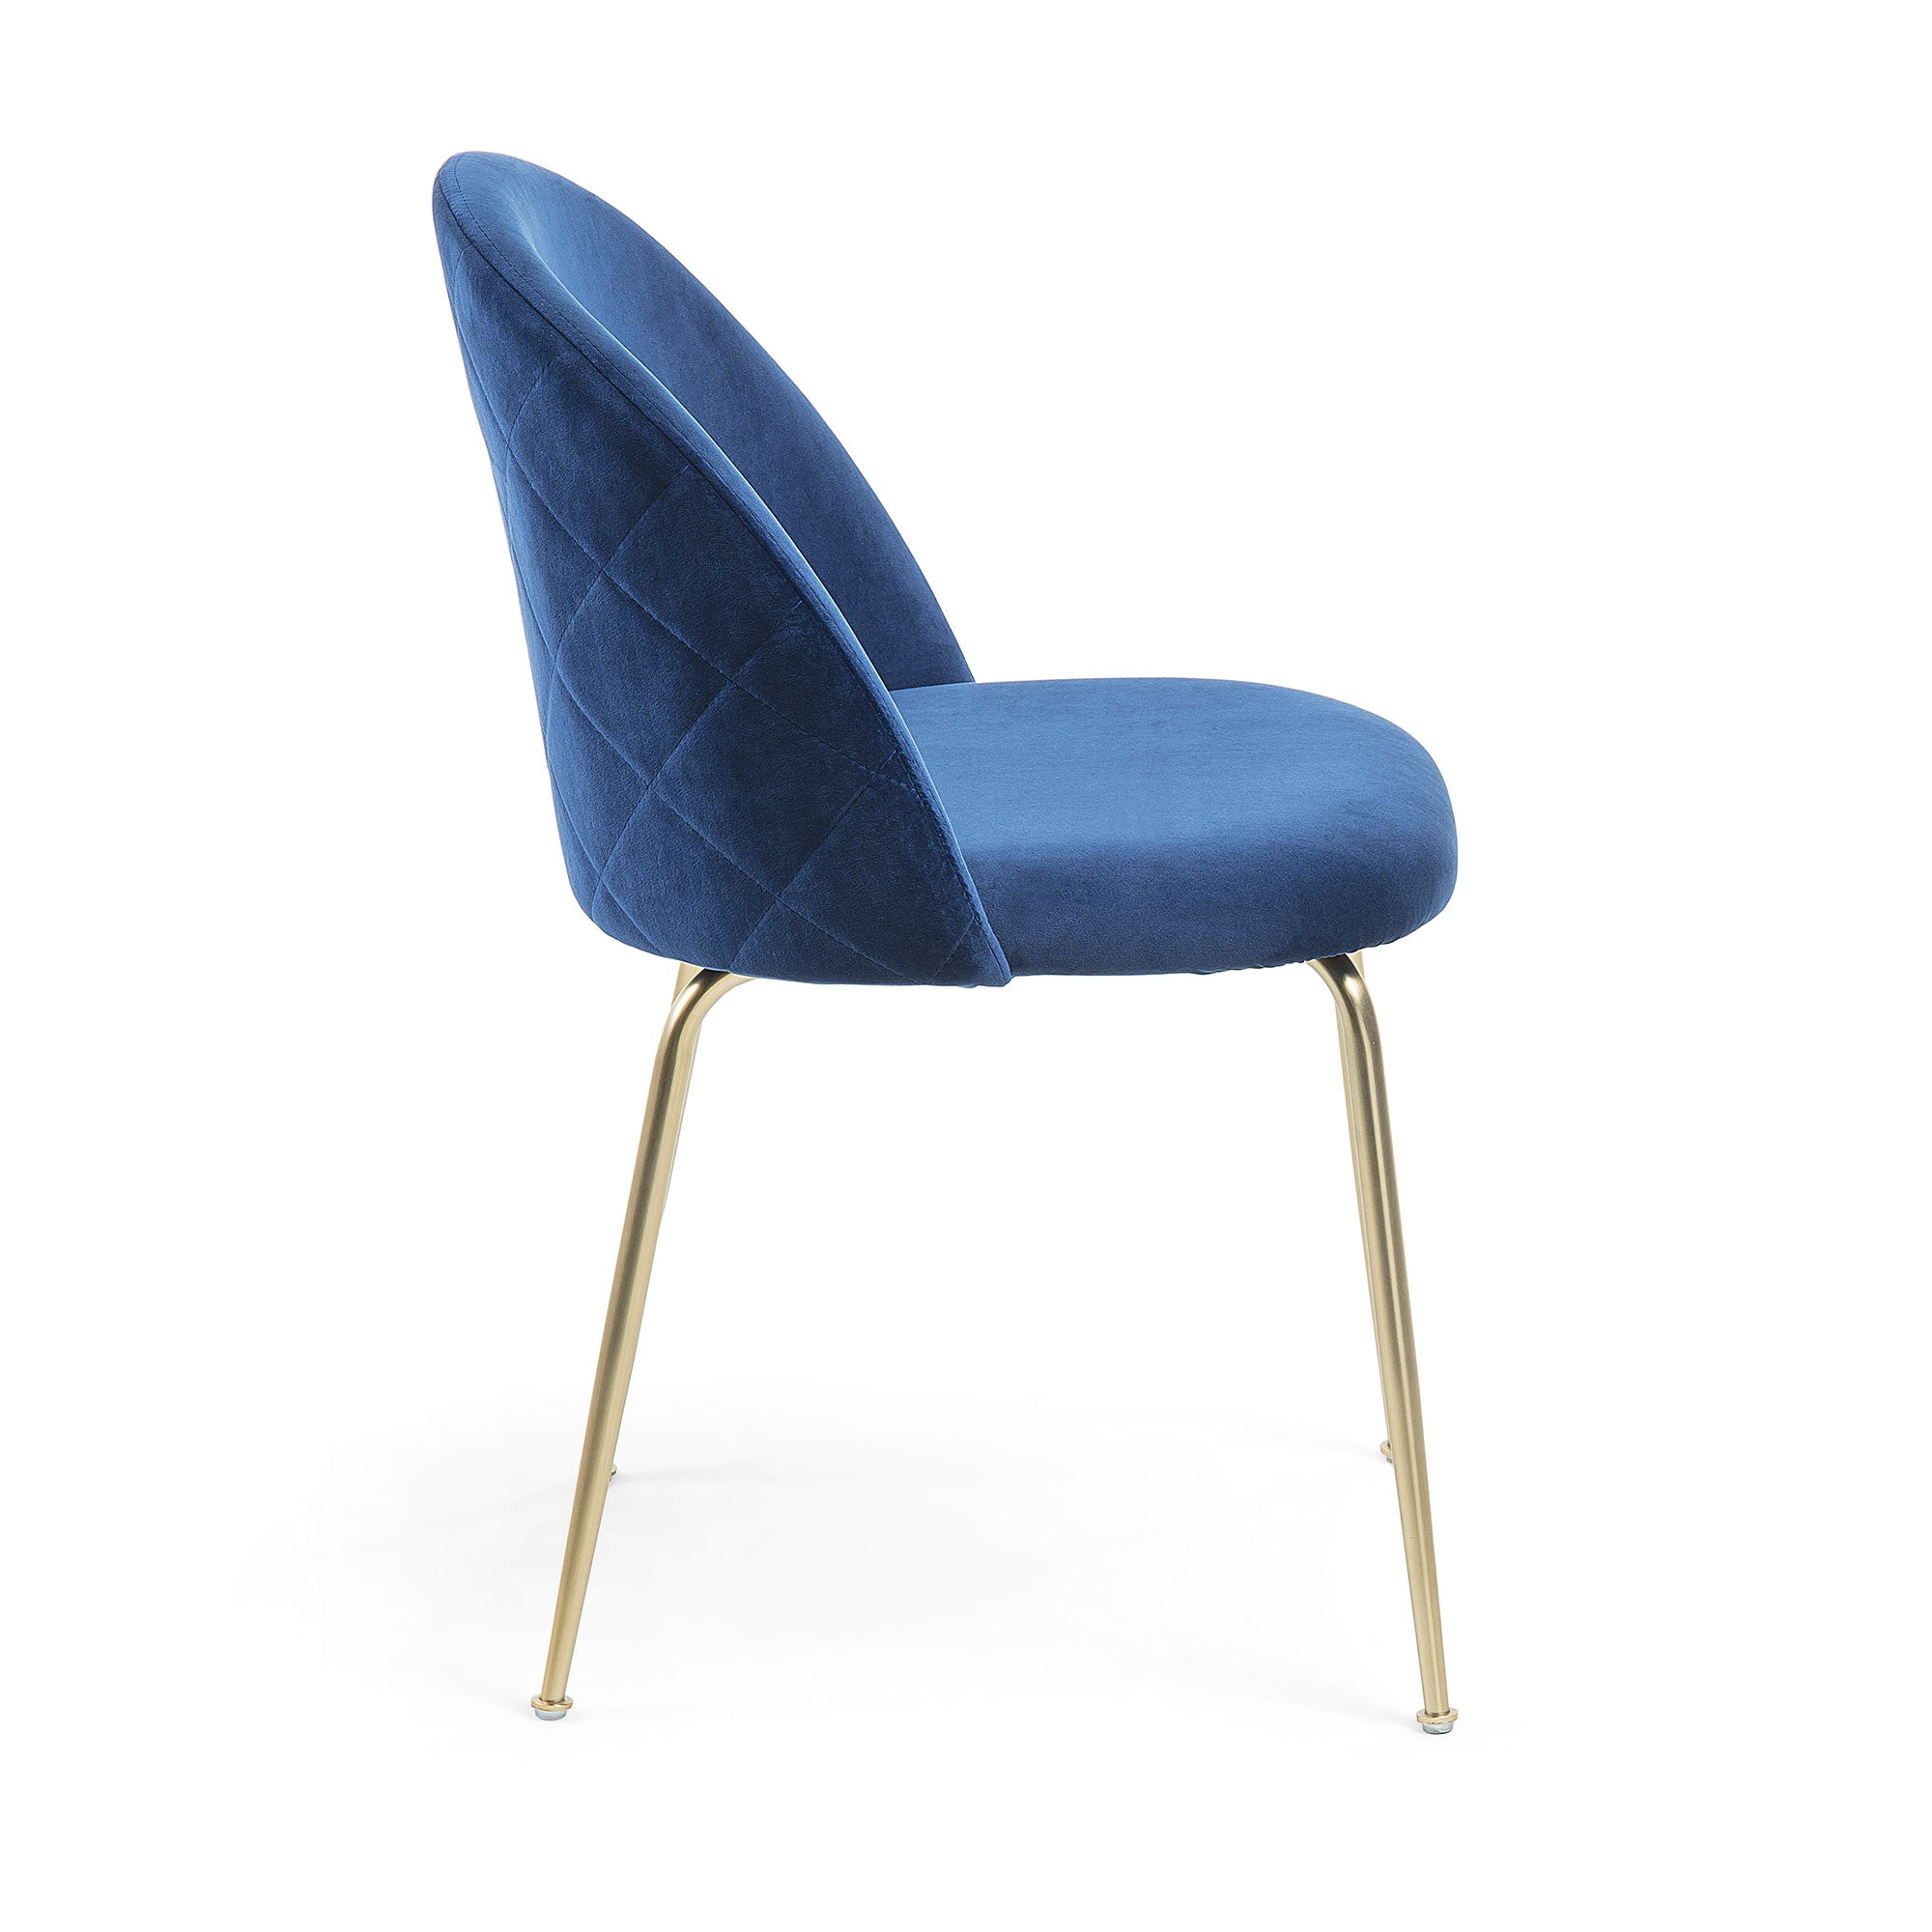 Mystery Dining Chair in Blue Velvet & Gold Legs